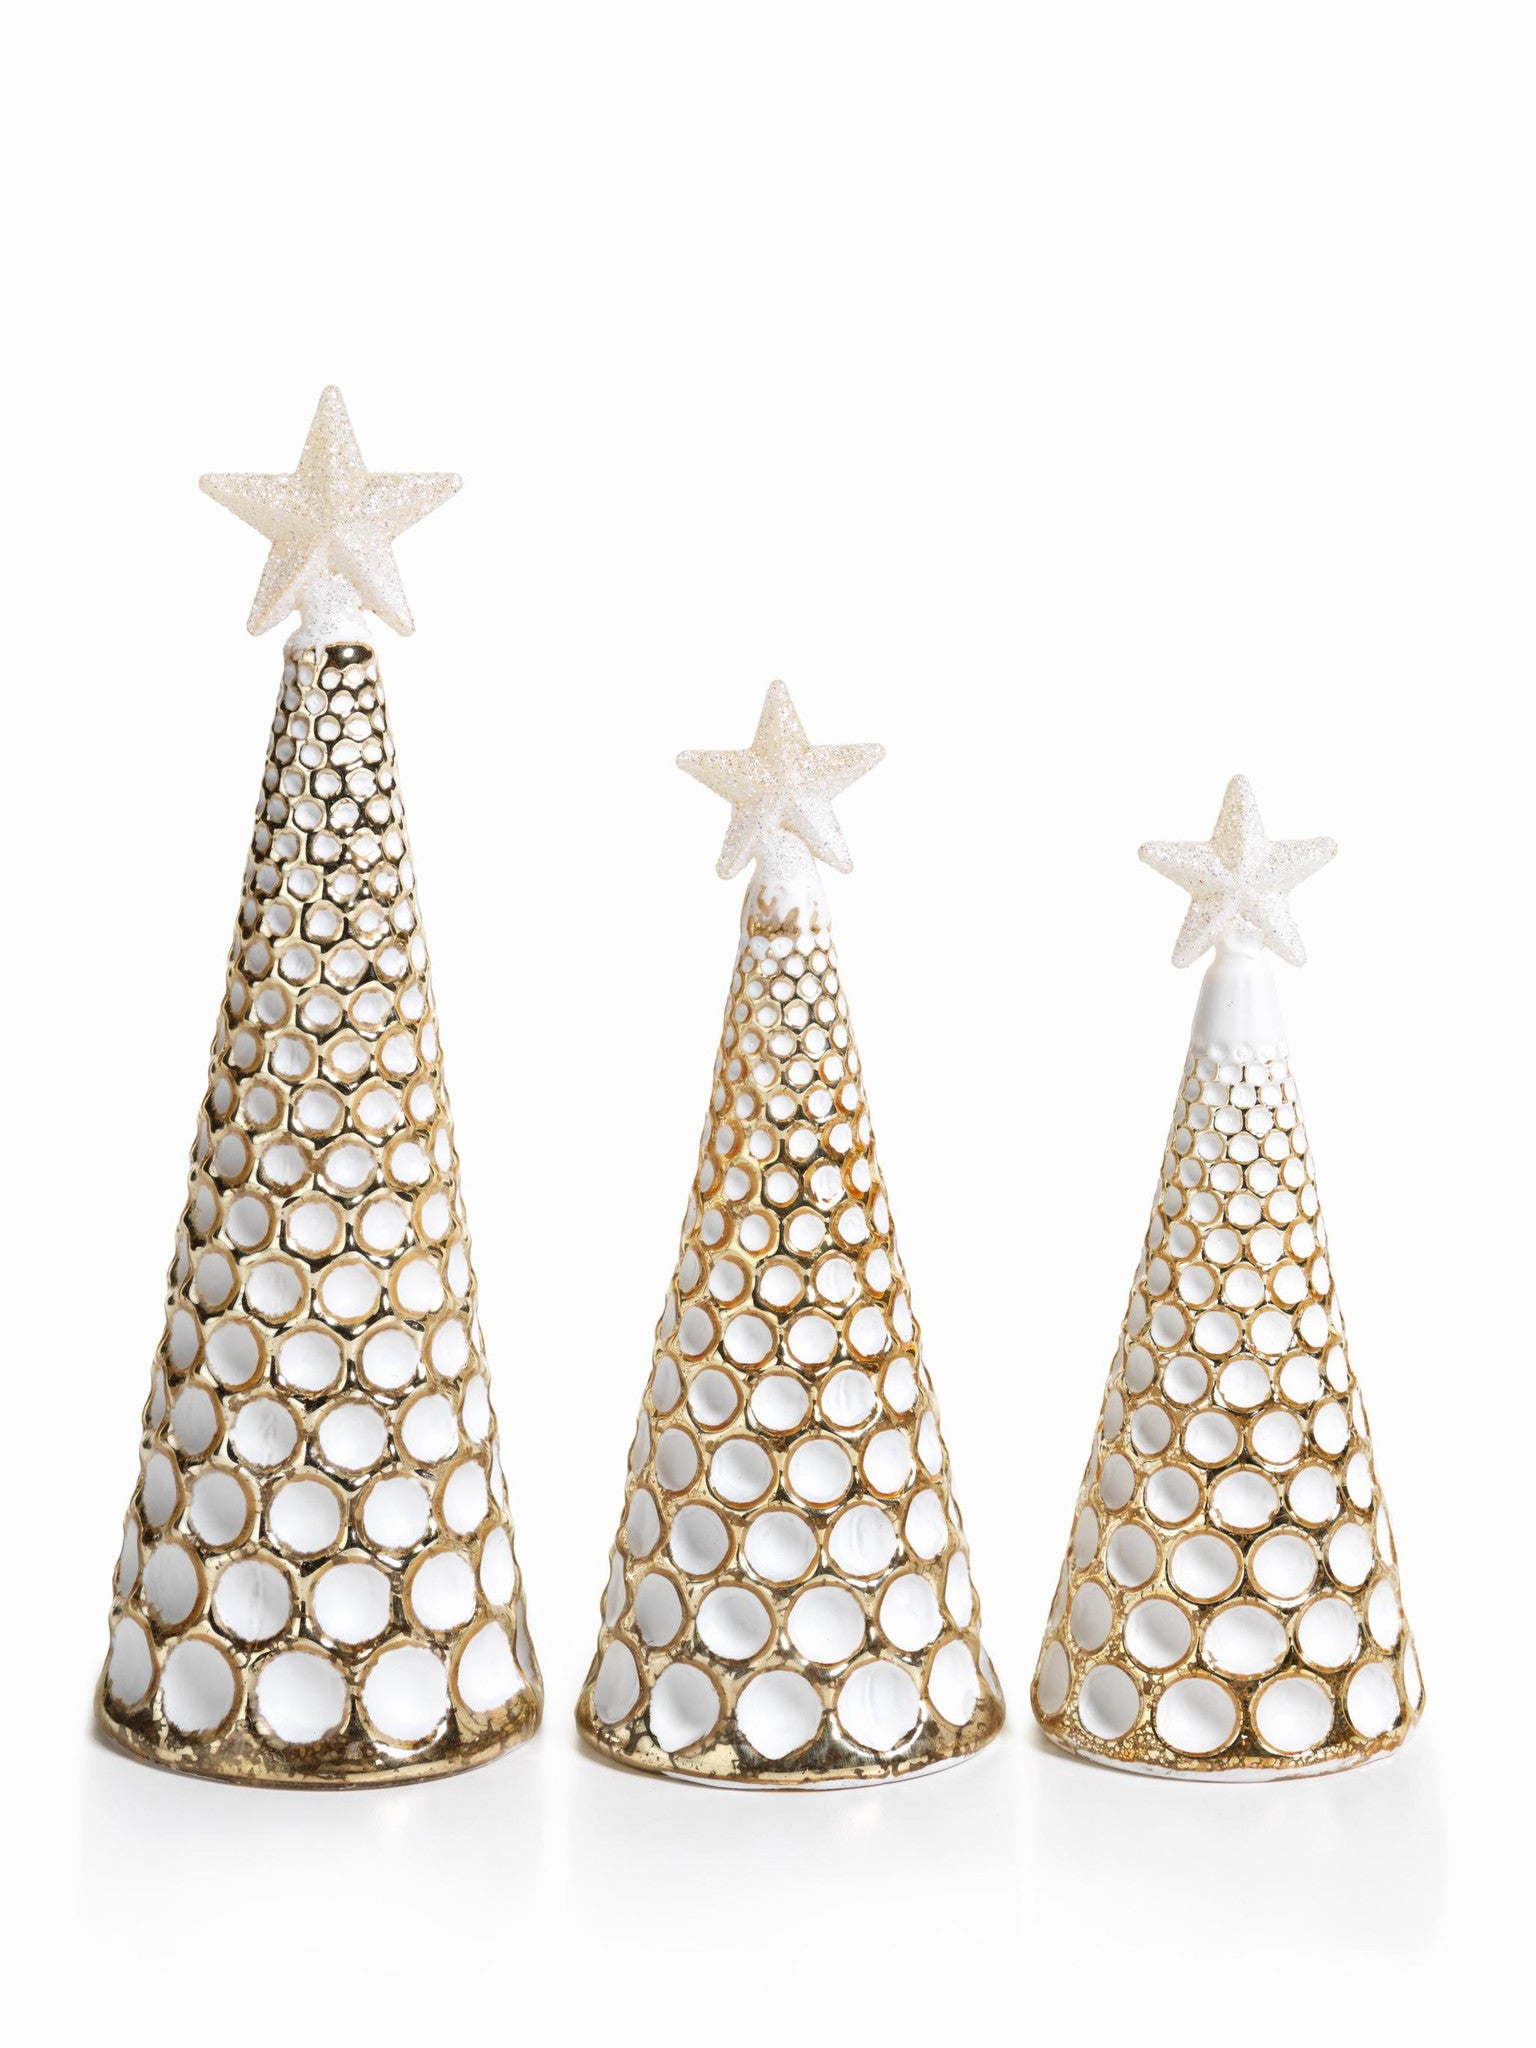 LED Glass Decorative Tree - Gold - Set of 6 -  - CARLYLE AVENUE - 14